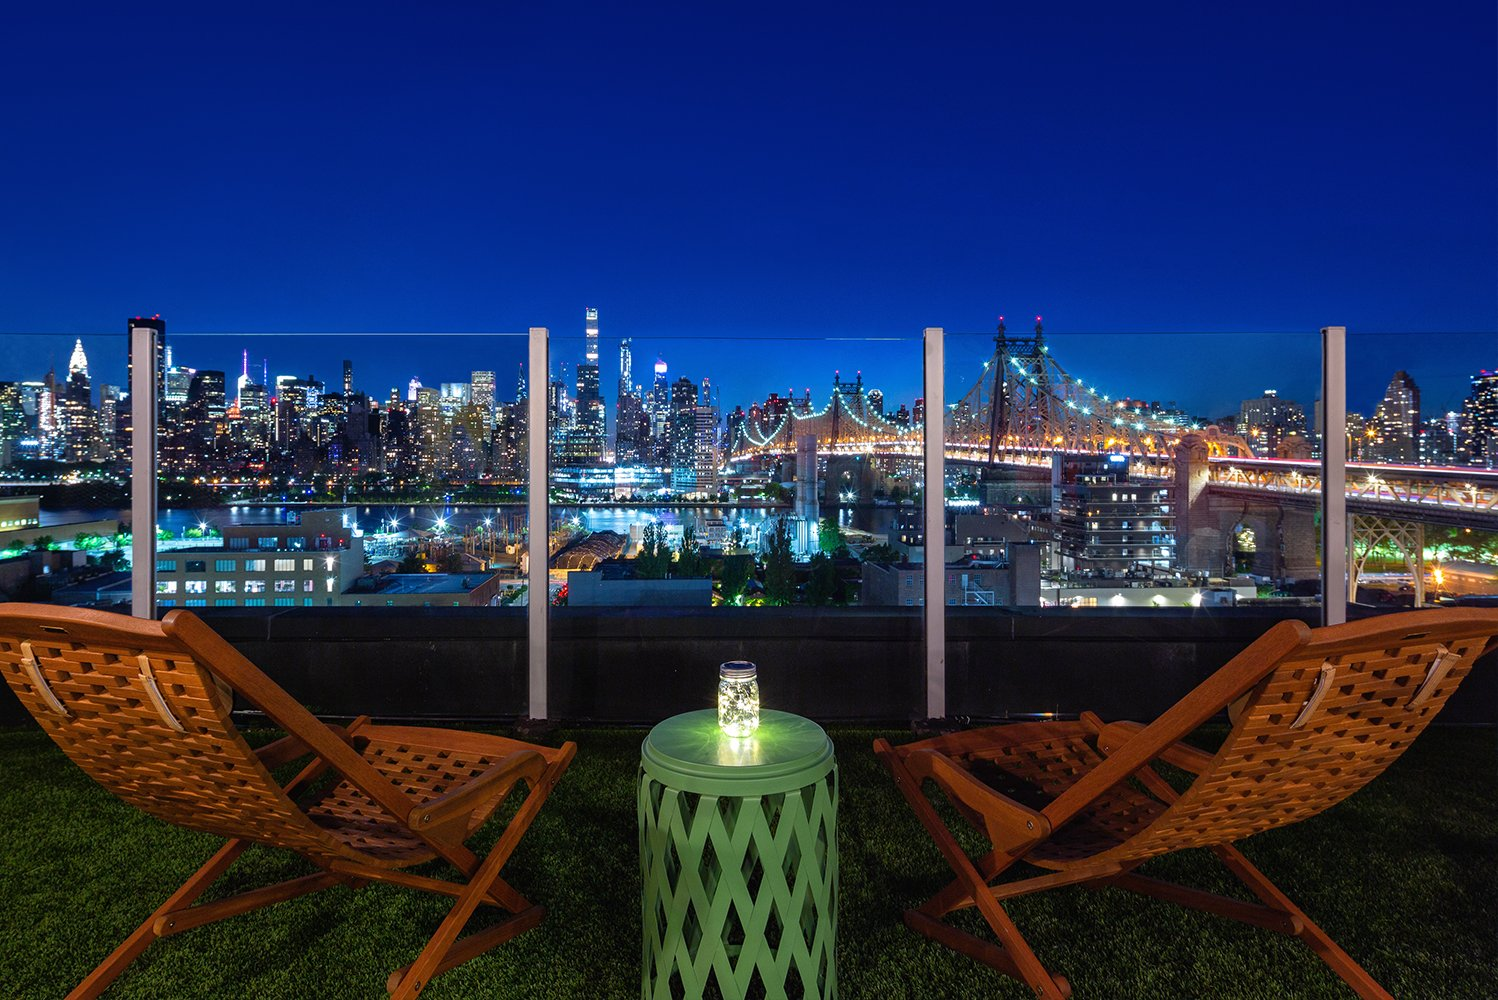 From the creators of the rooftop bar Ophelia, Merchants Hospitality, this rooftop venue is located at the top of the Z Hotel in Long Island City.